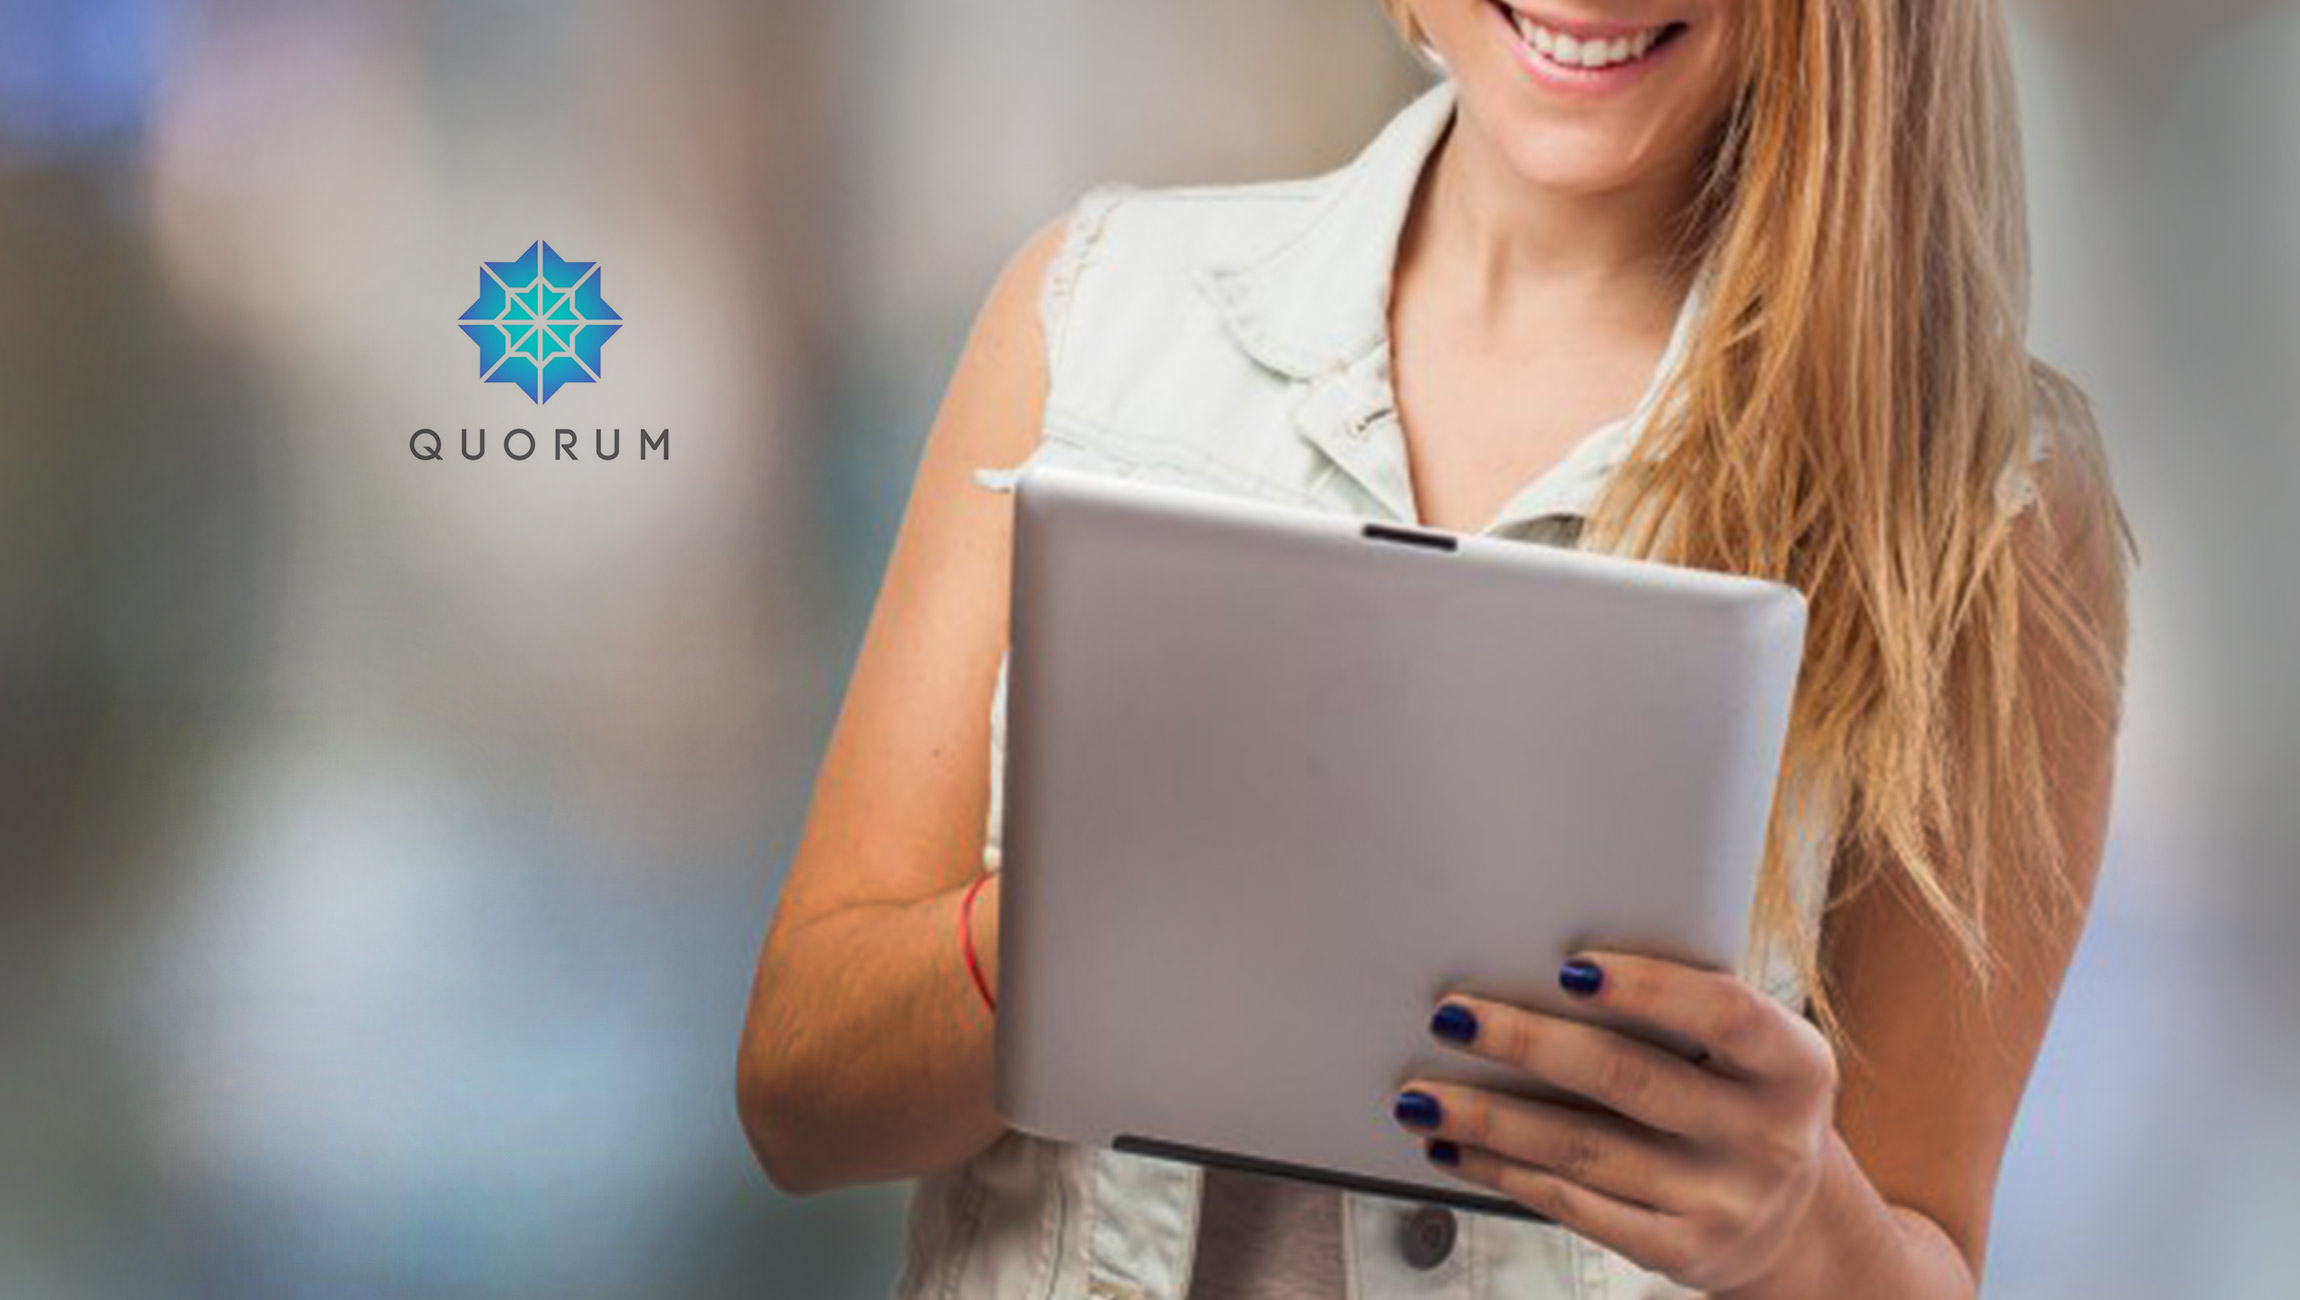 Quorum's Integrated Platform Opens New Dimension for Out-Of-Home Advertising, Synchronizing Billboards, Mobile and Social Ads, and OOH Response Data